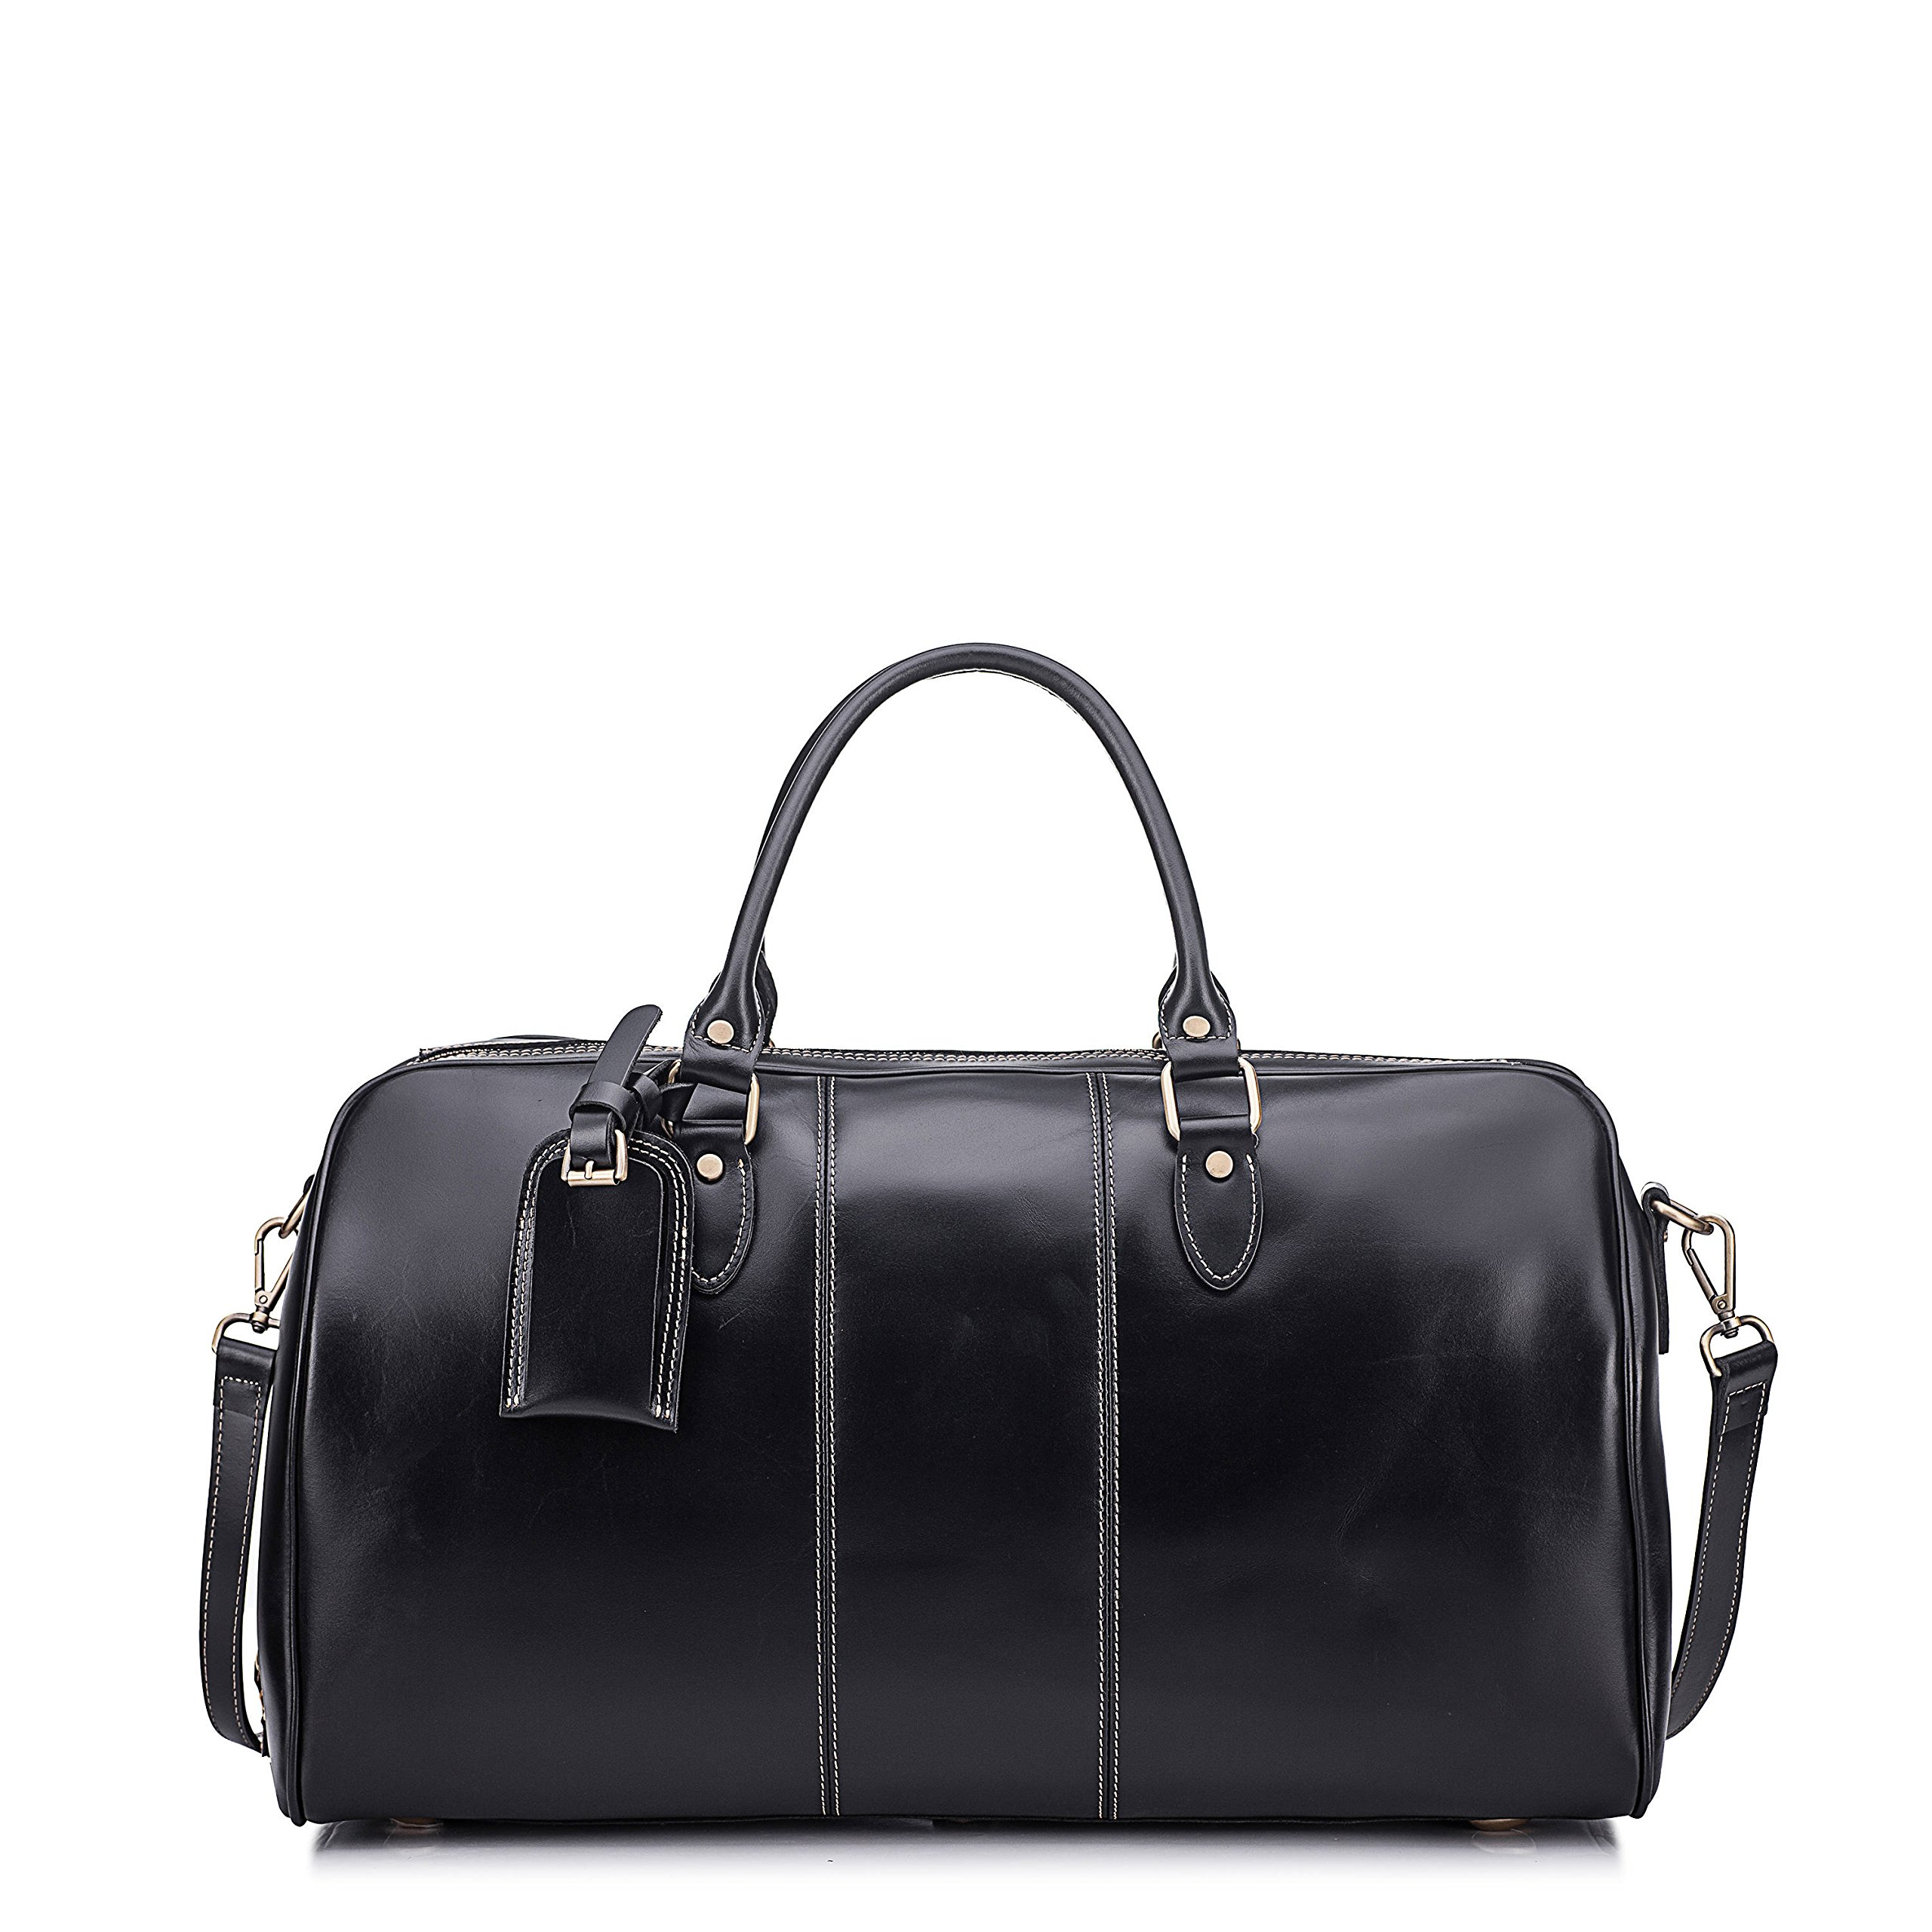 Leather Duffel Bag Travel Overnight Gym Sports Weekender Tote Bags Black by Kissloves (Image #2)